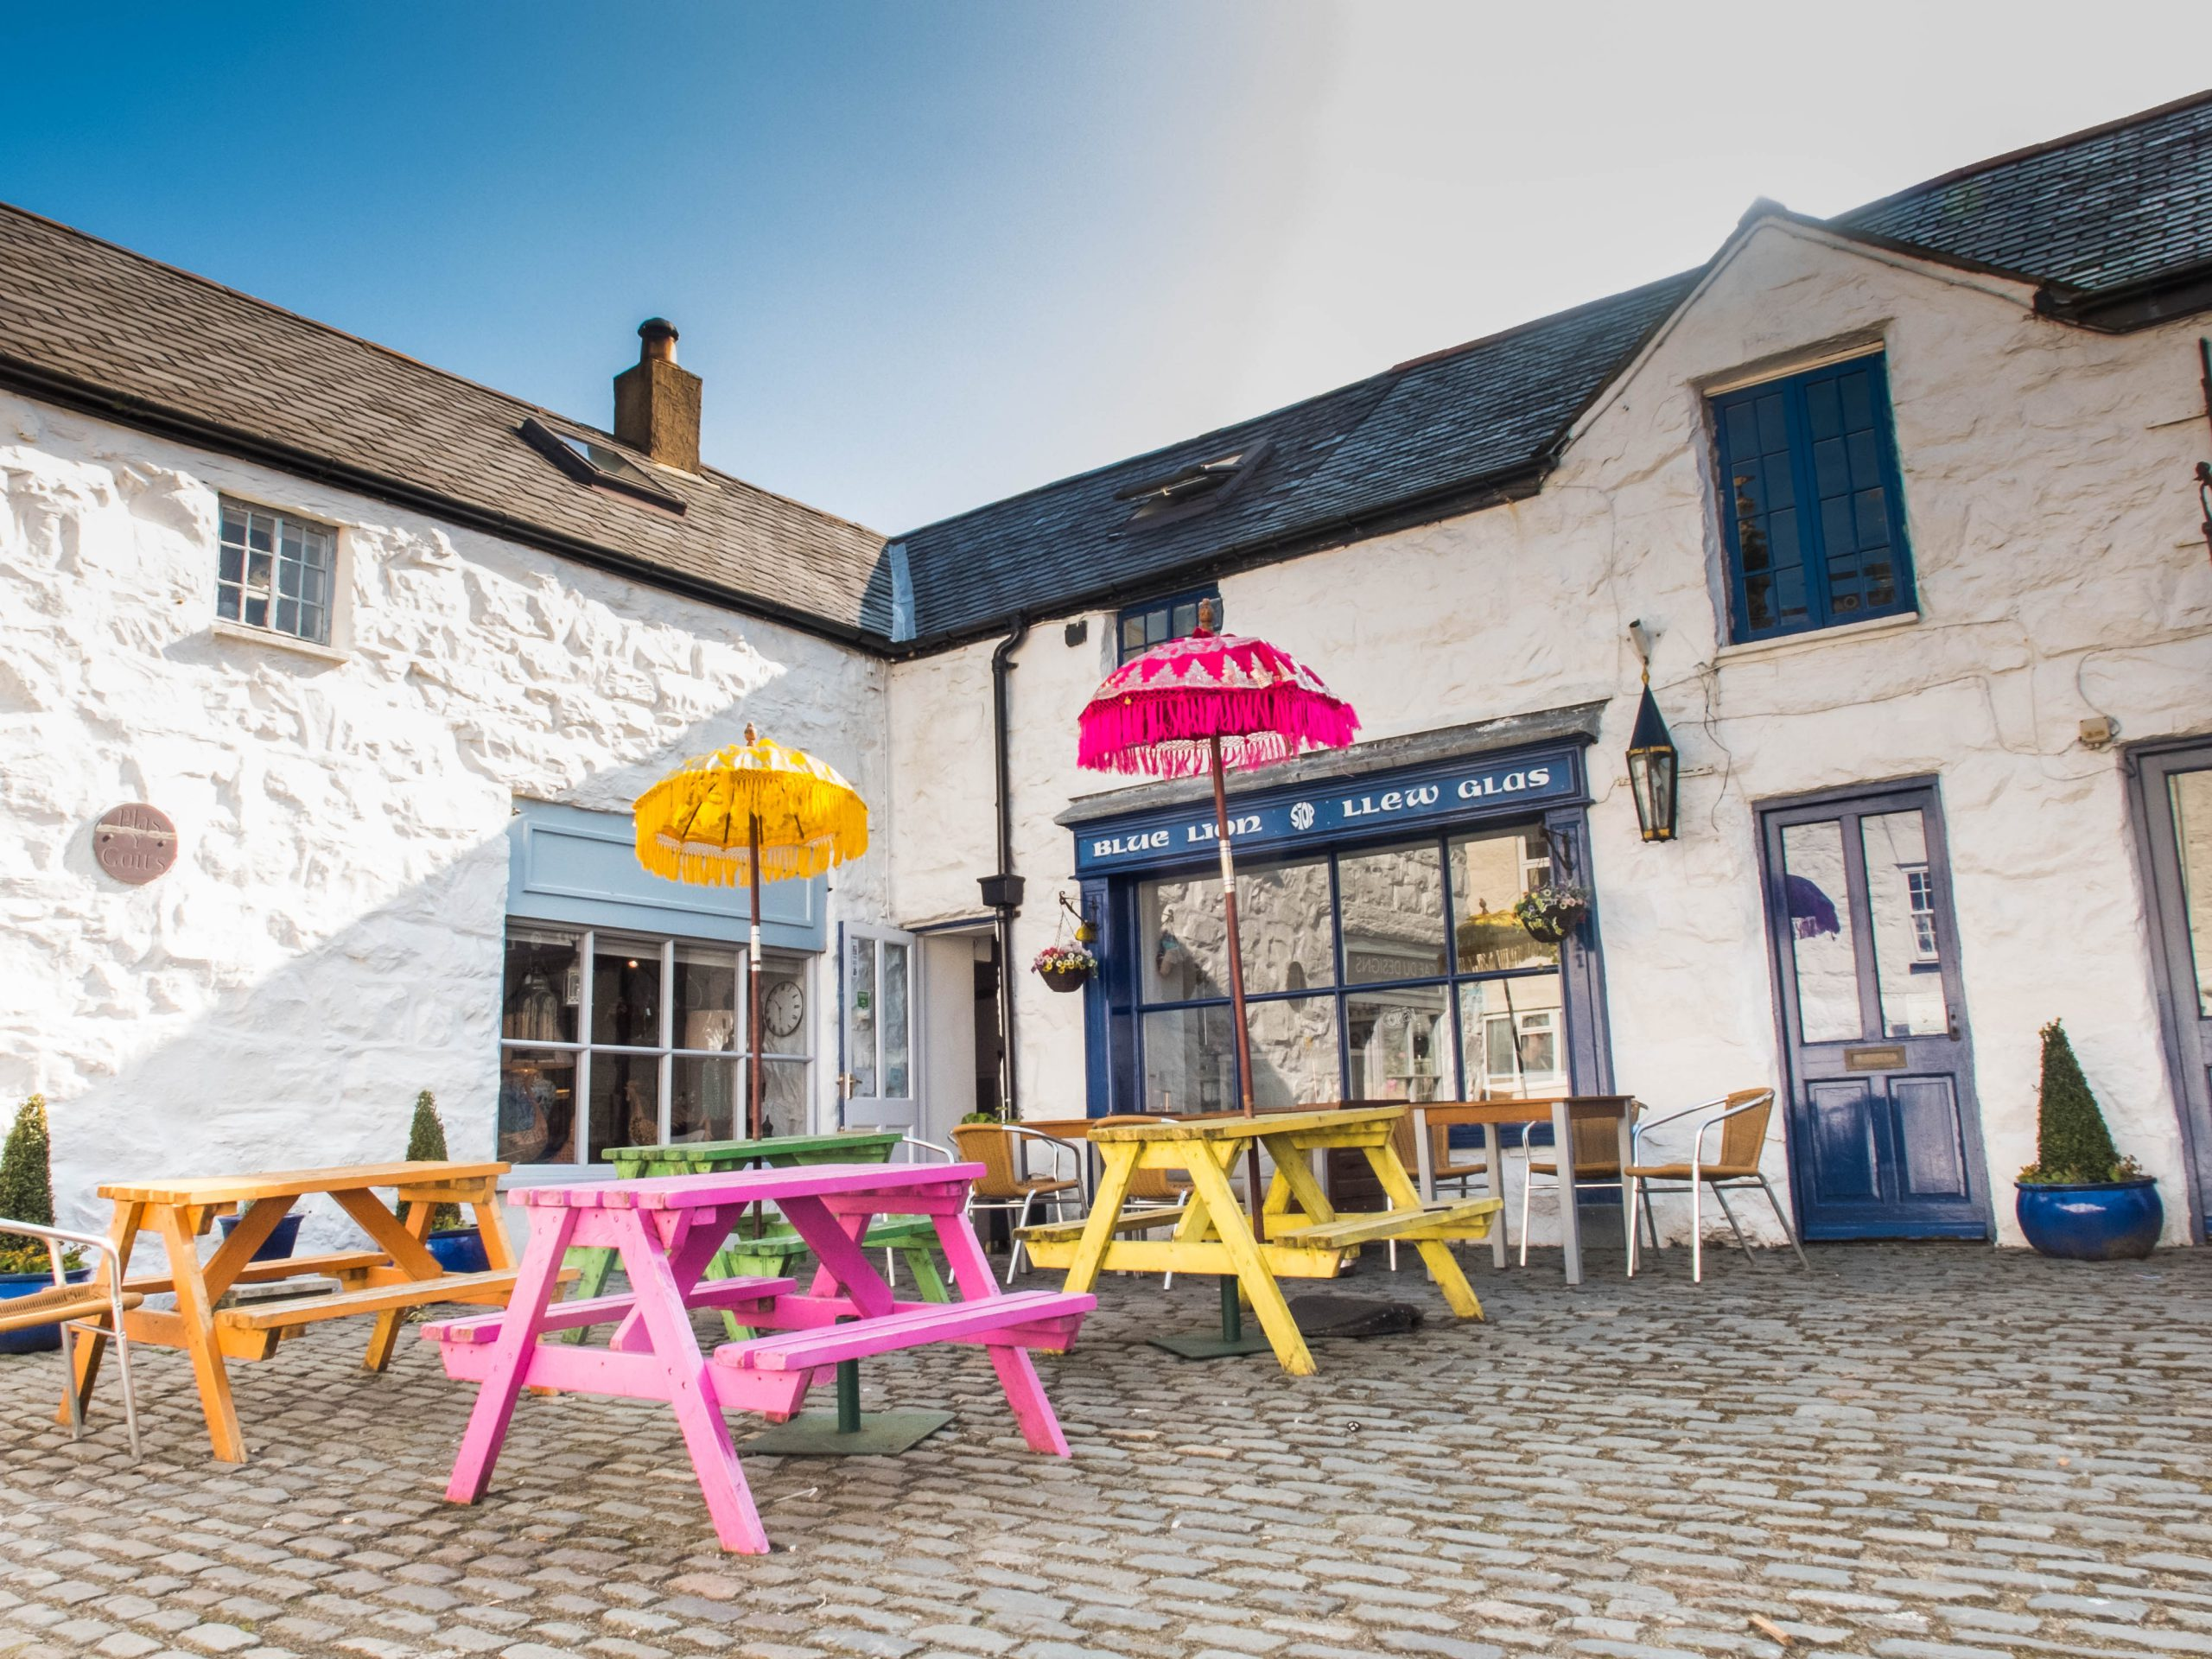 Outside the Llew Glas Cafe on Harlech High Street